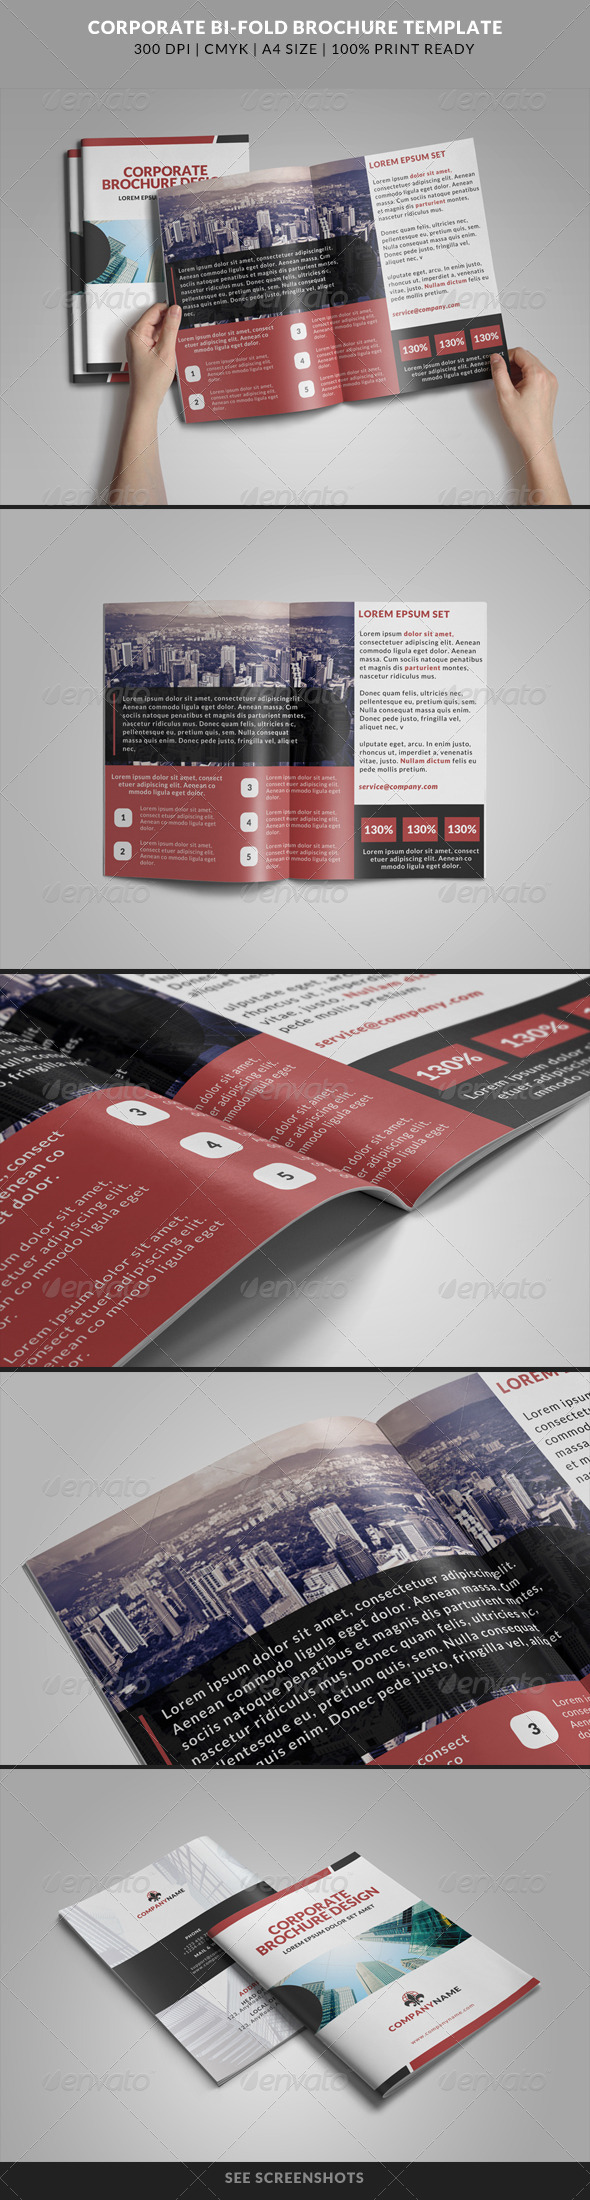 GraphicRiver Corporate Bi-Fold Brochures Template 11 8320638